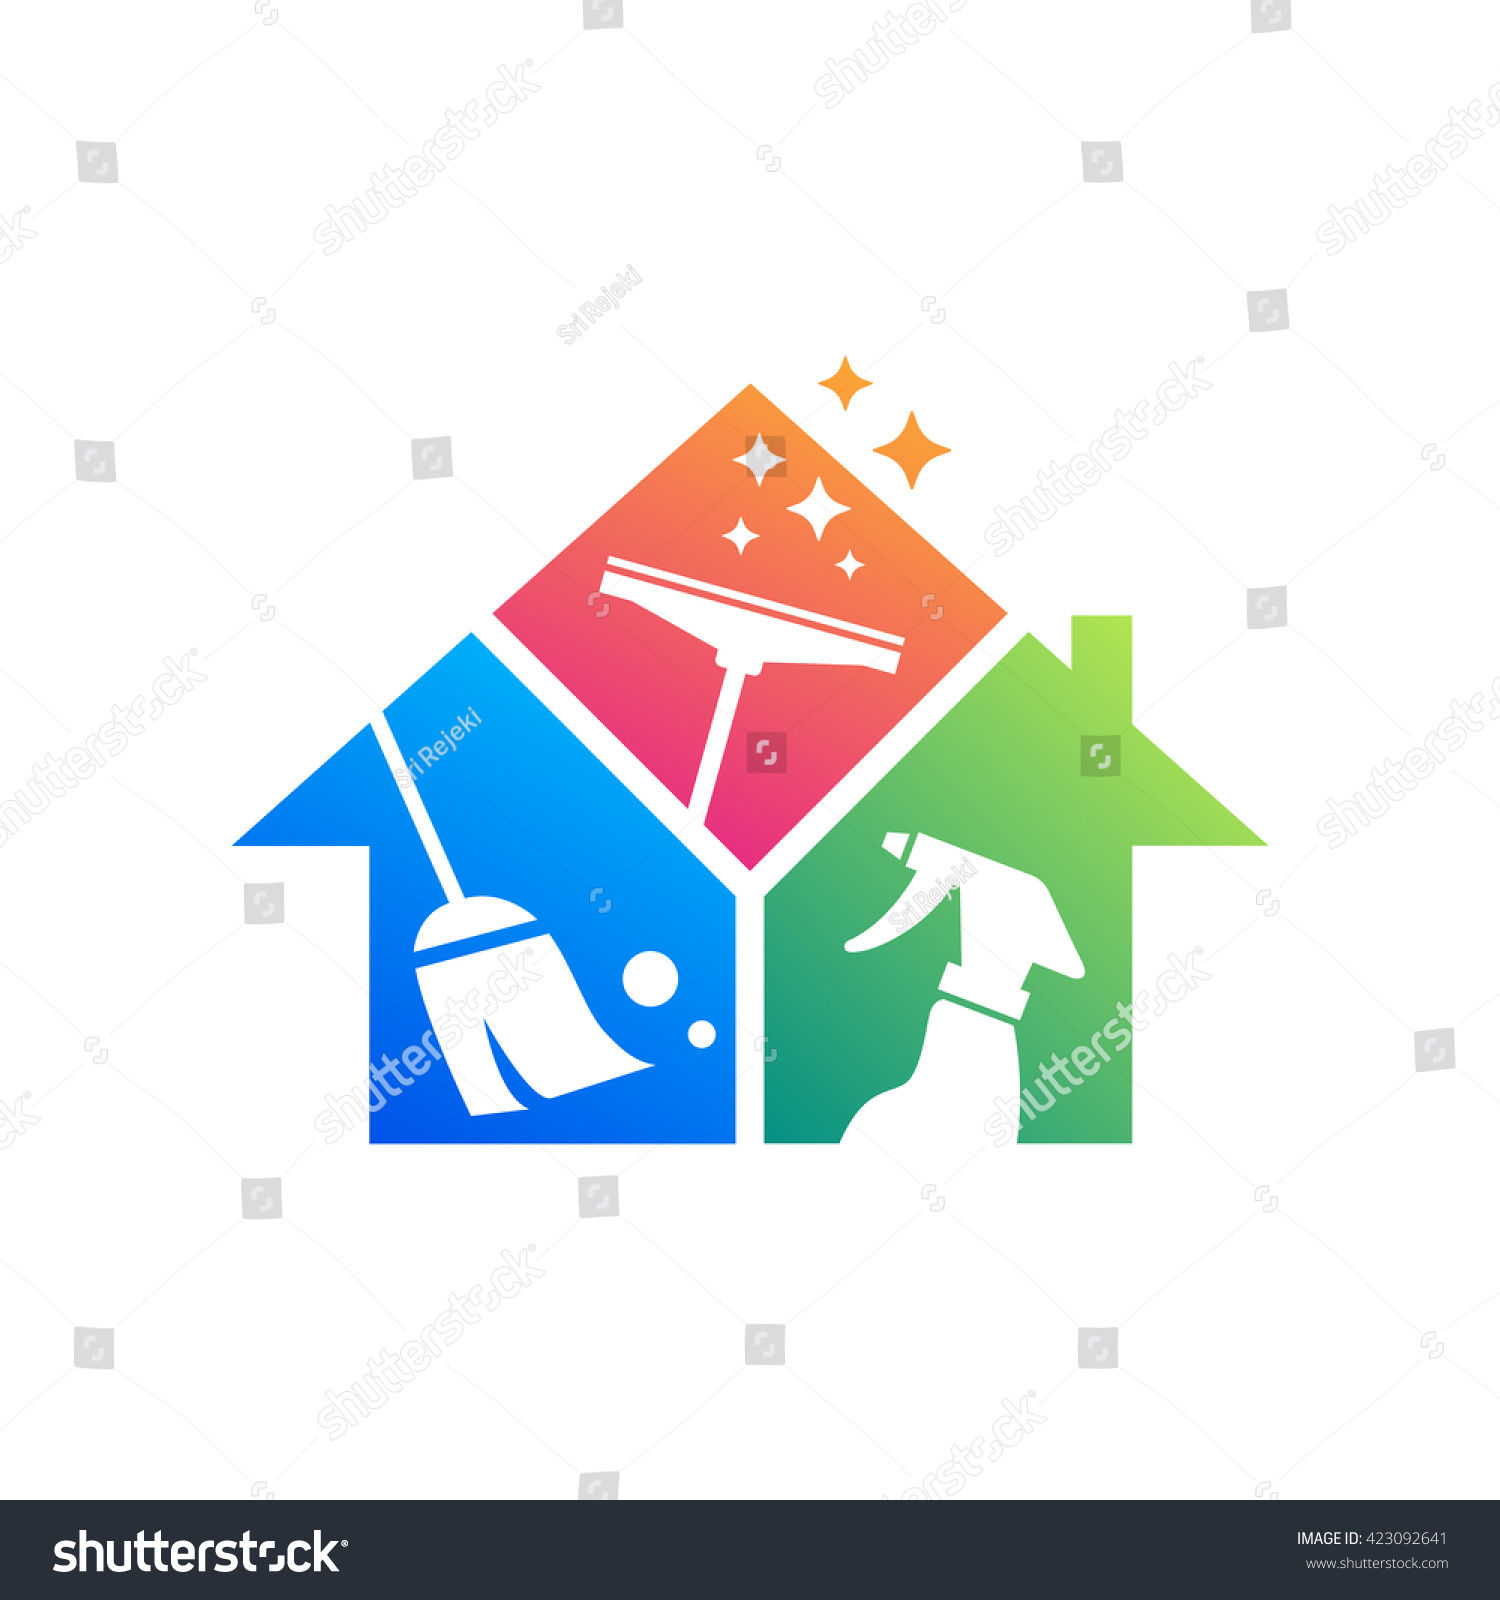 Cleaning service logo design idea creative stock vector for How to start building a house